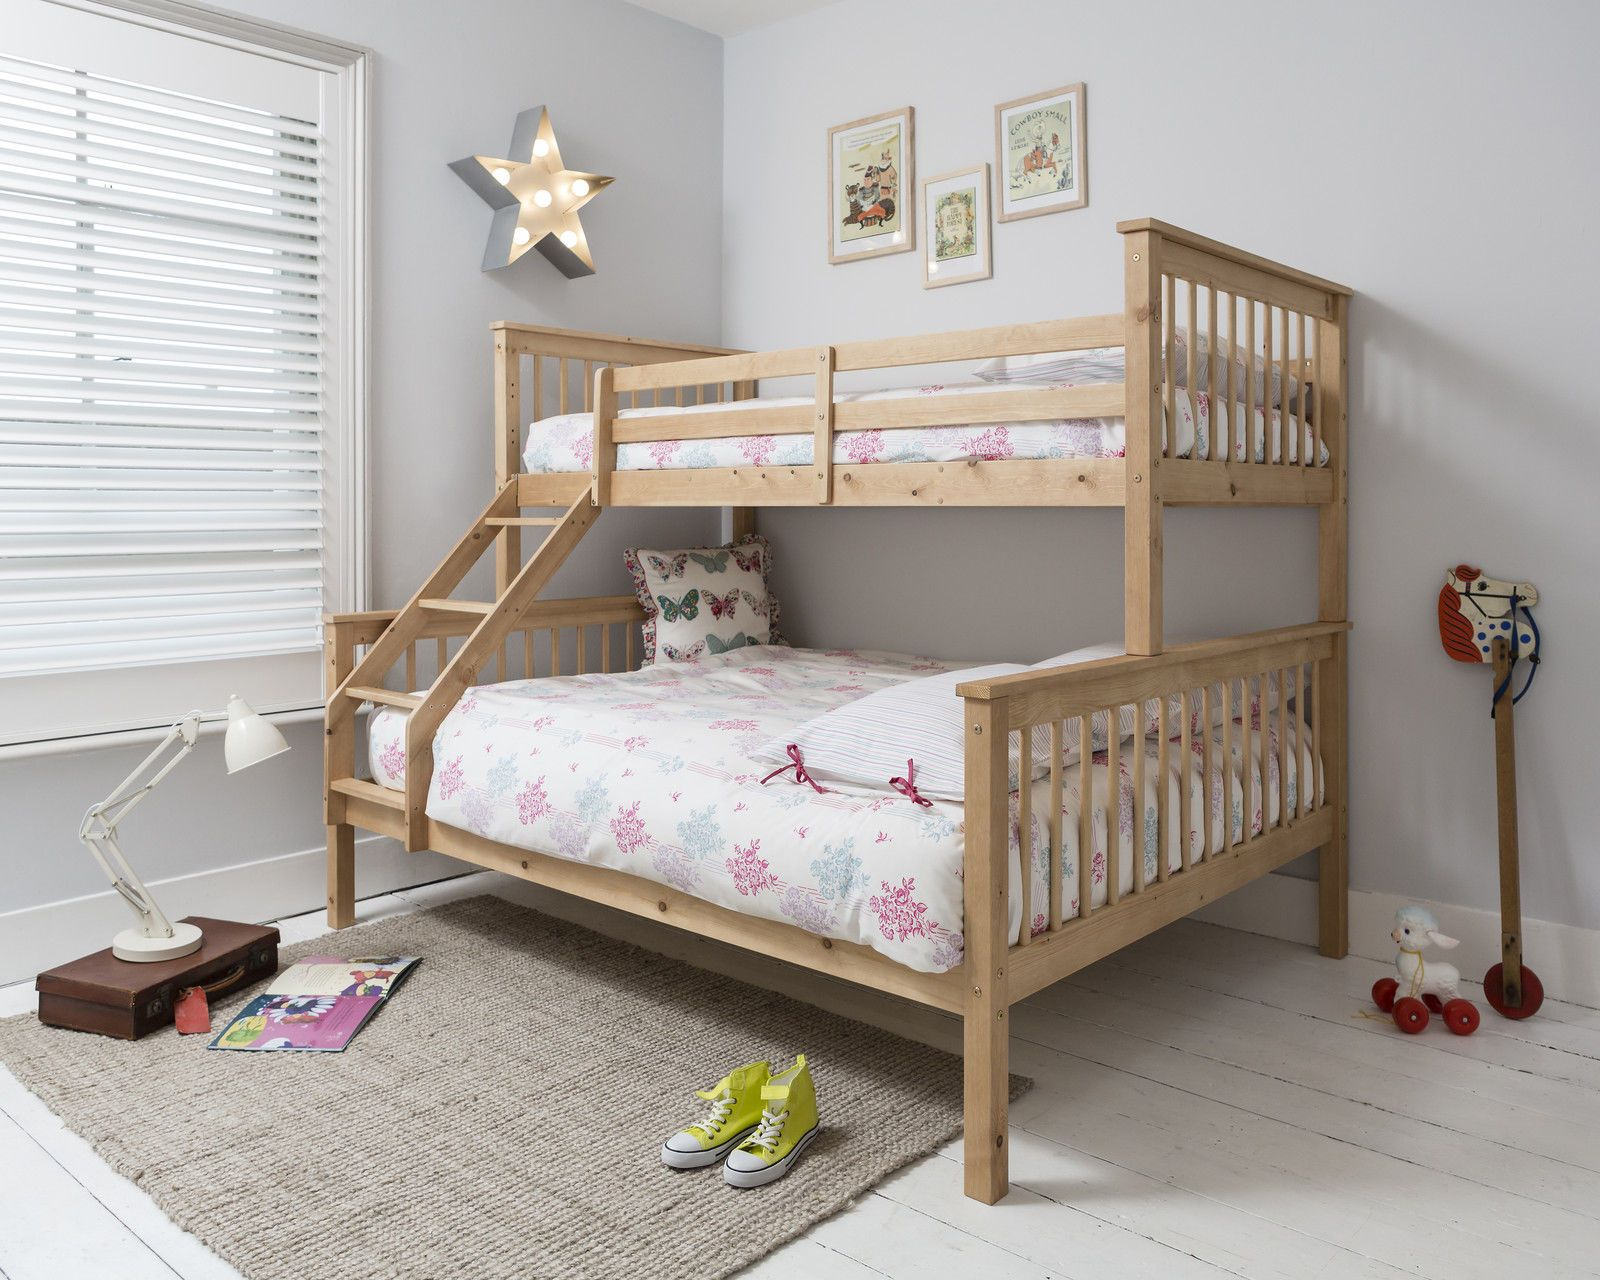 Triple Sleeper Bed, Bunk Bed , Double Bed in Pine Hanna in